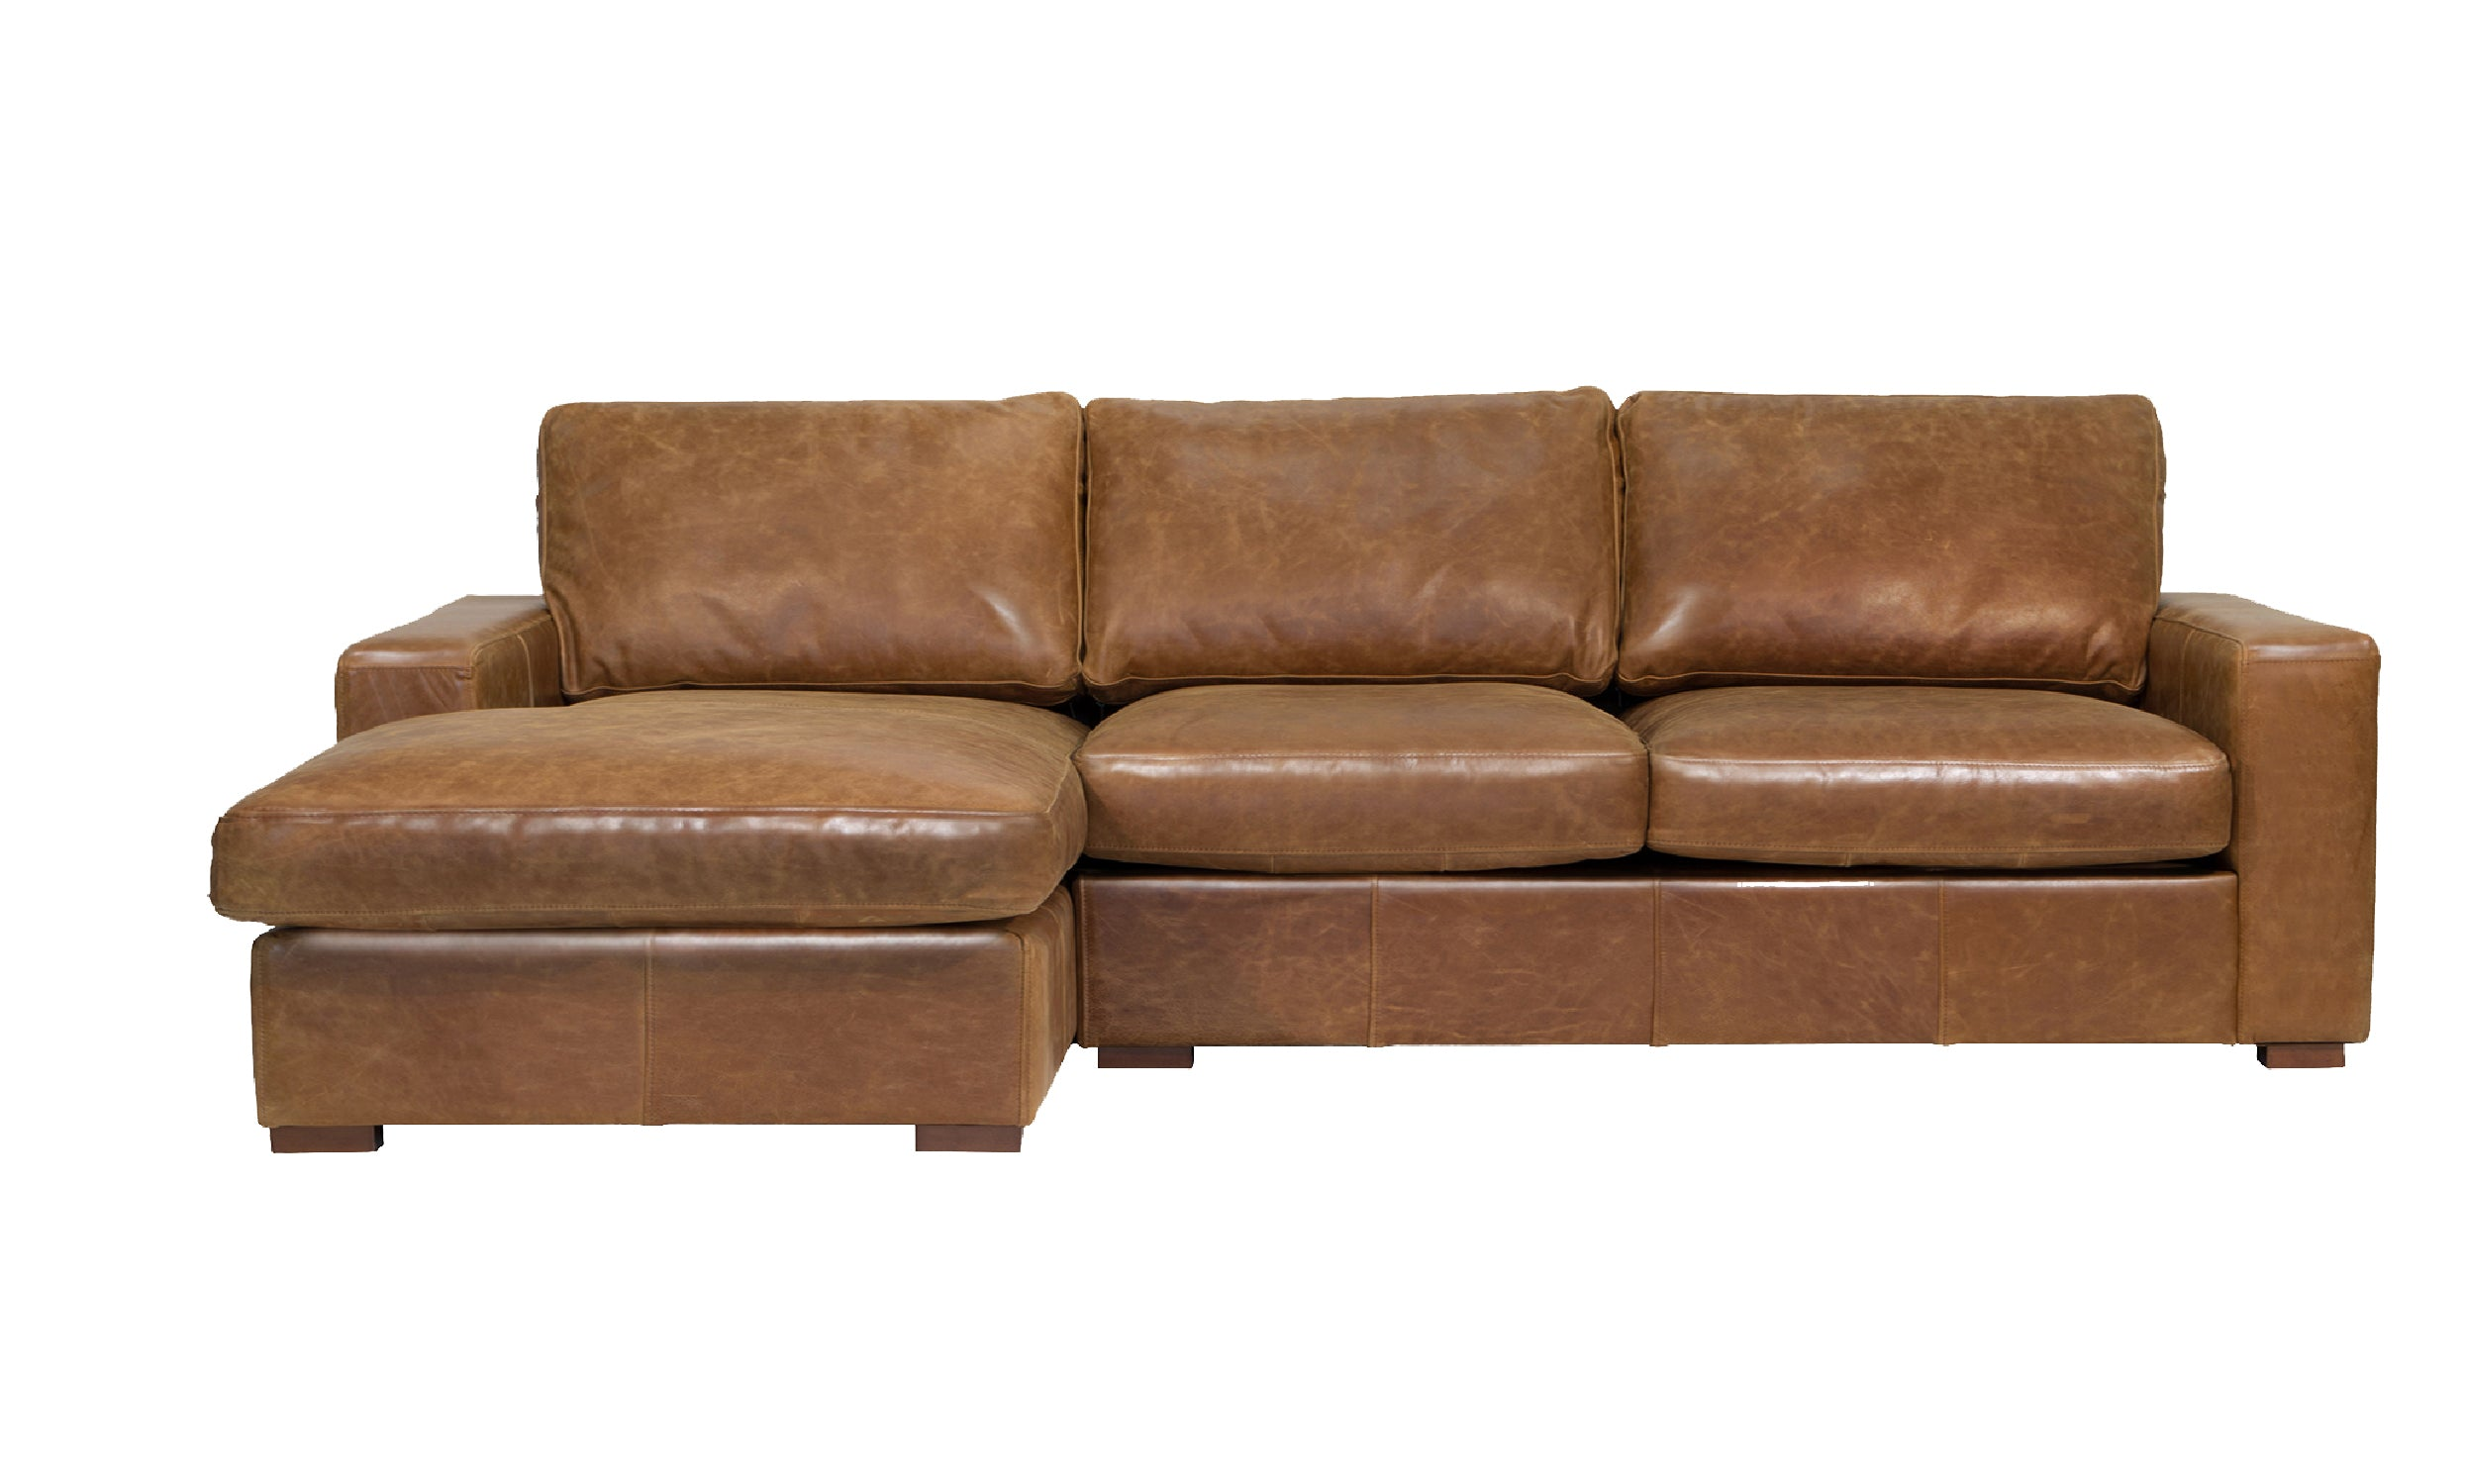 Maximus Full Aniline Chaise and Corner Groups-harris tweed leather sofas-Against The Grain Furniture-3 Seater Left Hand Facing Chaise-Against The Grain Furniture